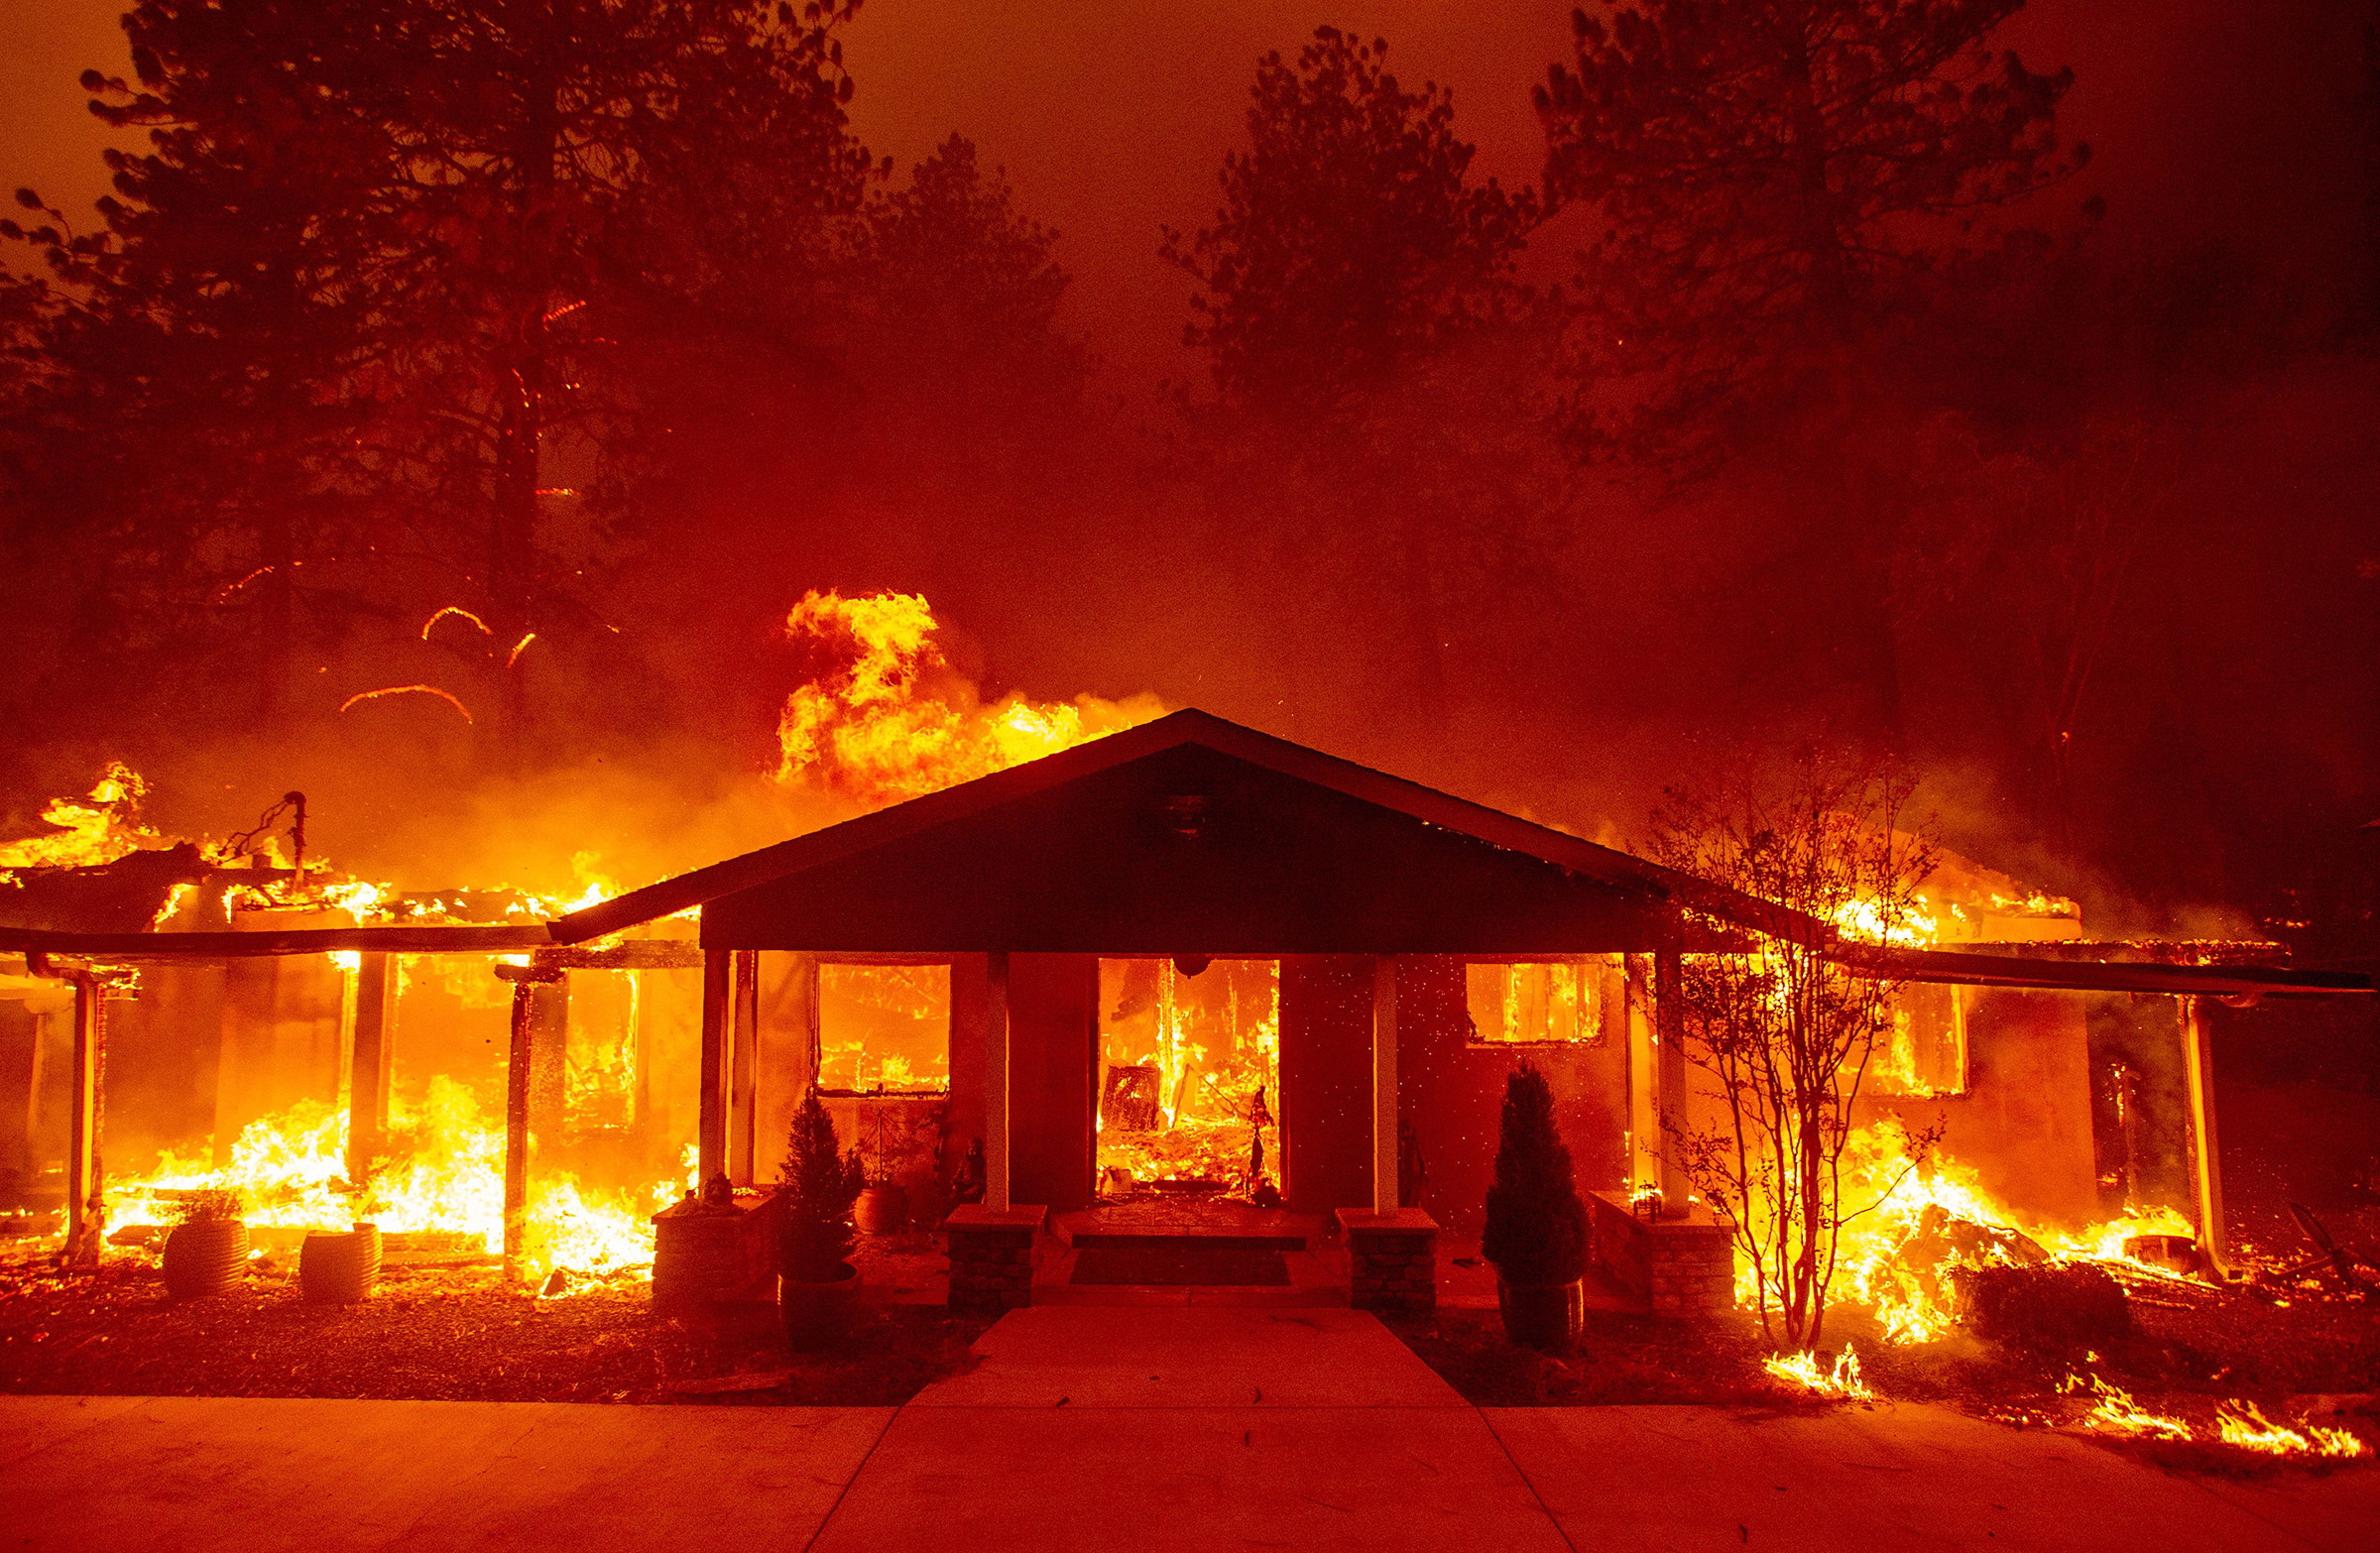 A home burns during the Camp fire in Paradise, California on Nov. 8, 2018.